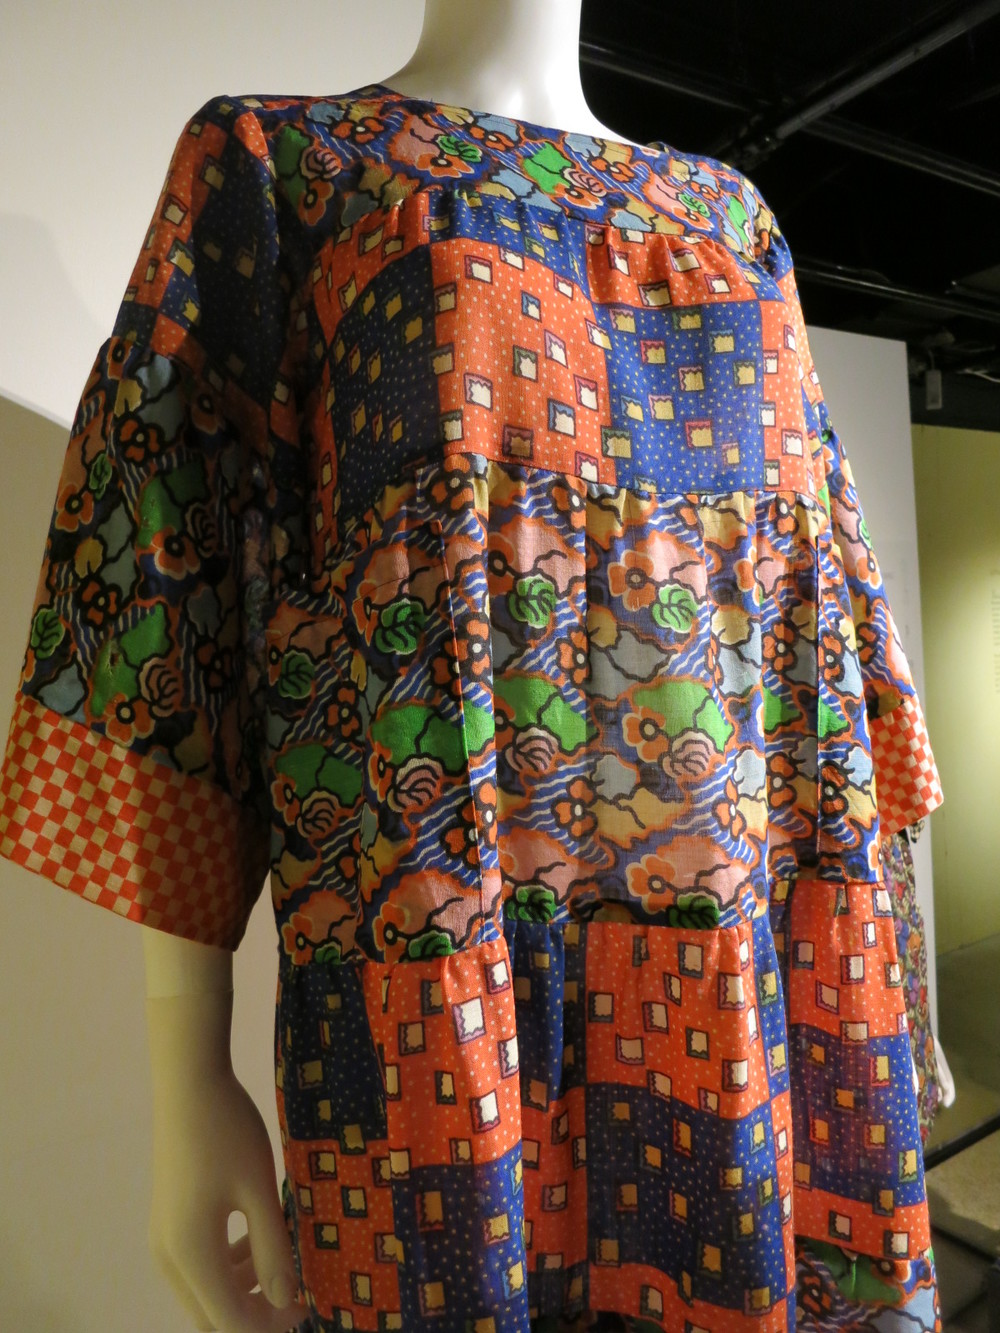 Liberty in Fashion exhibition at the Fashion & Textile Museum, Bermondsey, London 2015. This early 1970s dress was designed by Foale and Tuffin. They loved to mix prints and here they have used prints designed by Richard Nevill, Susan Collier and Sarah Campbell.